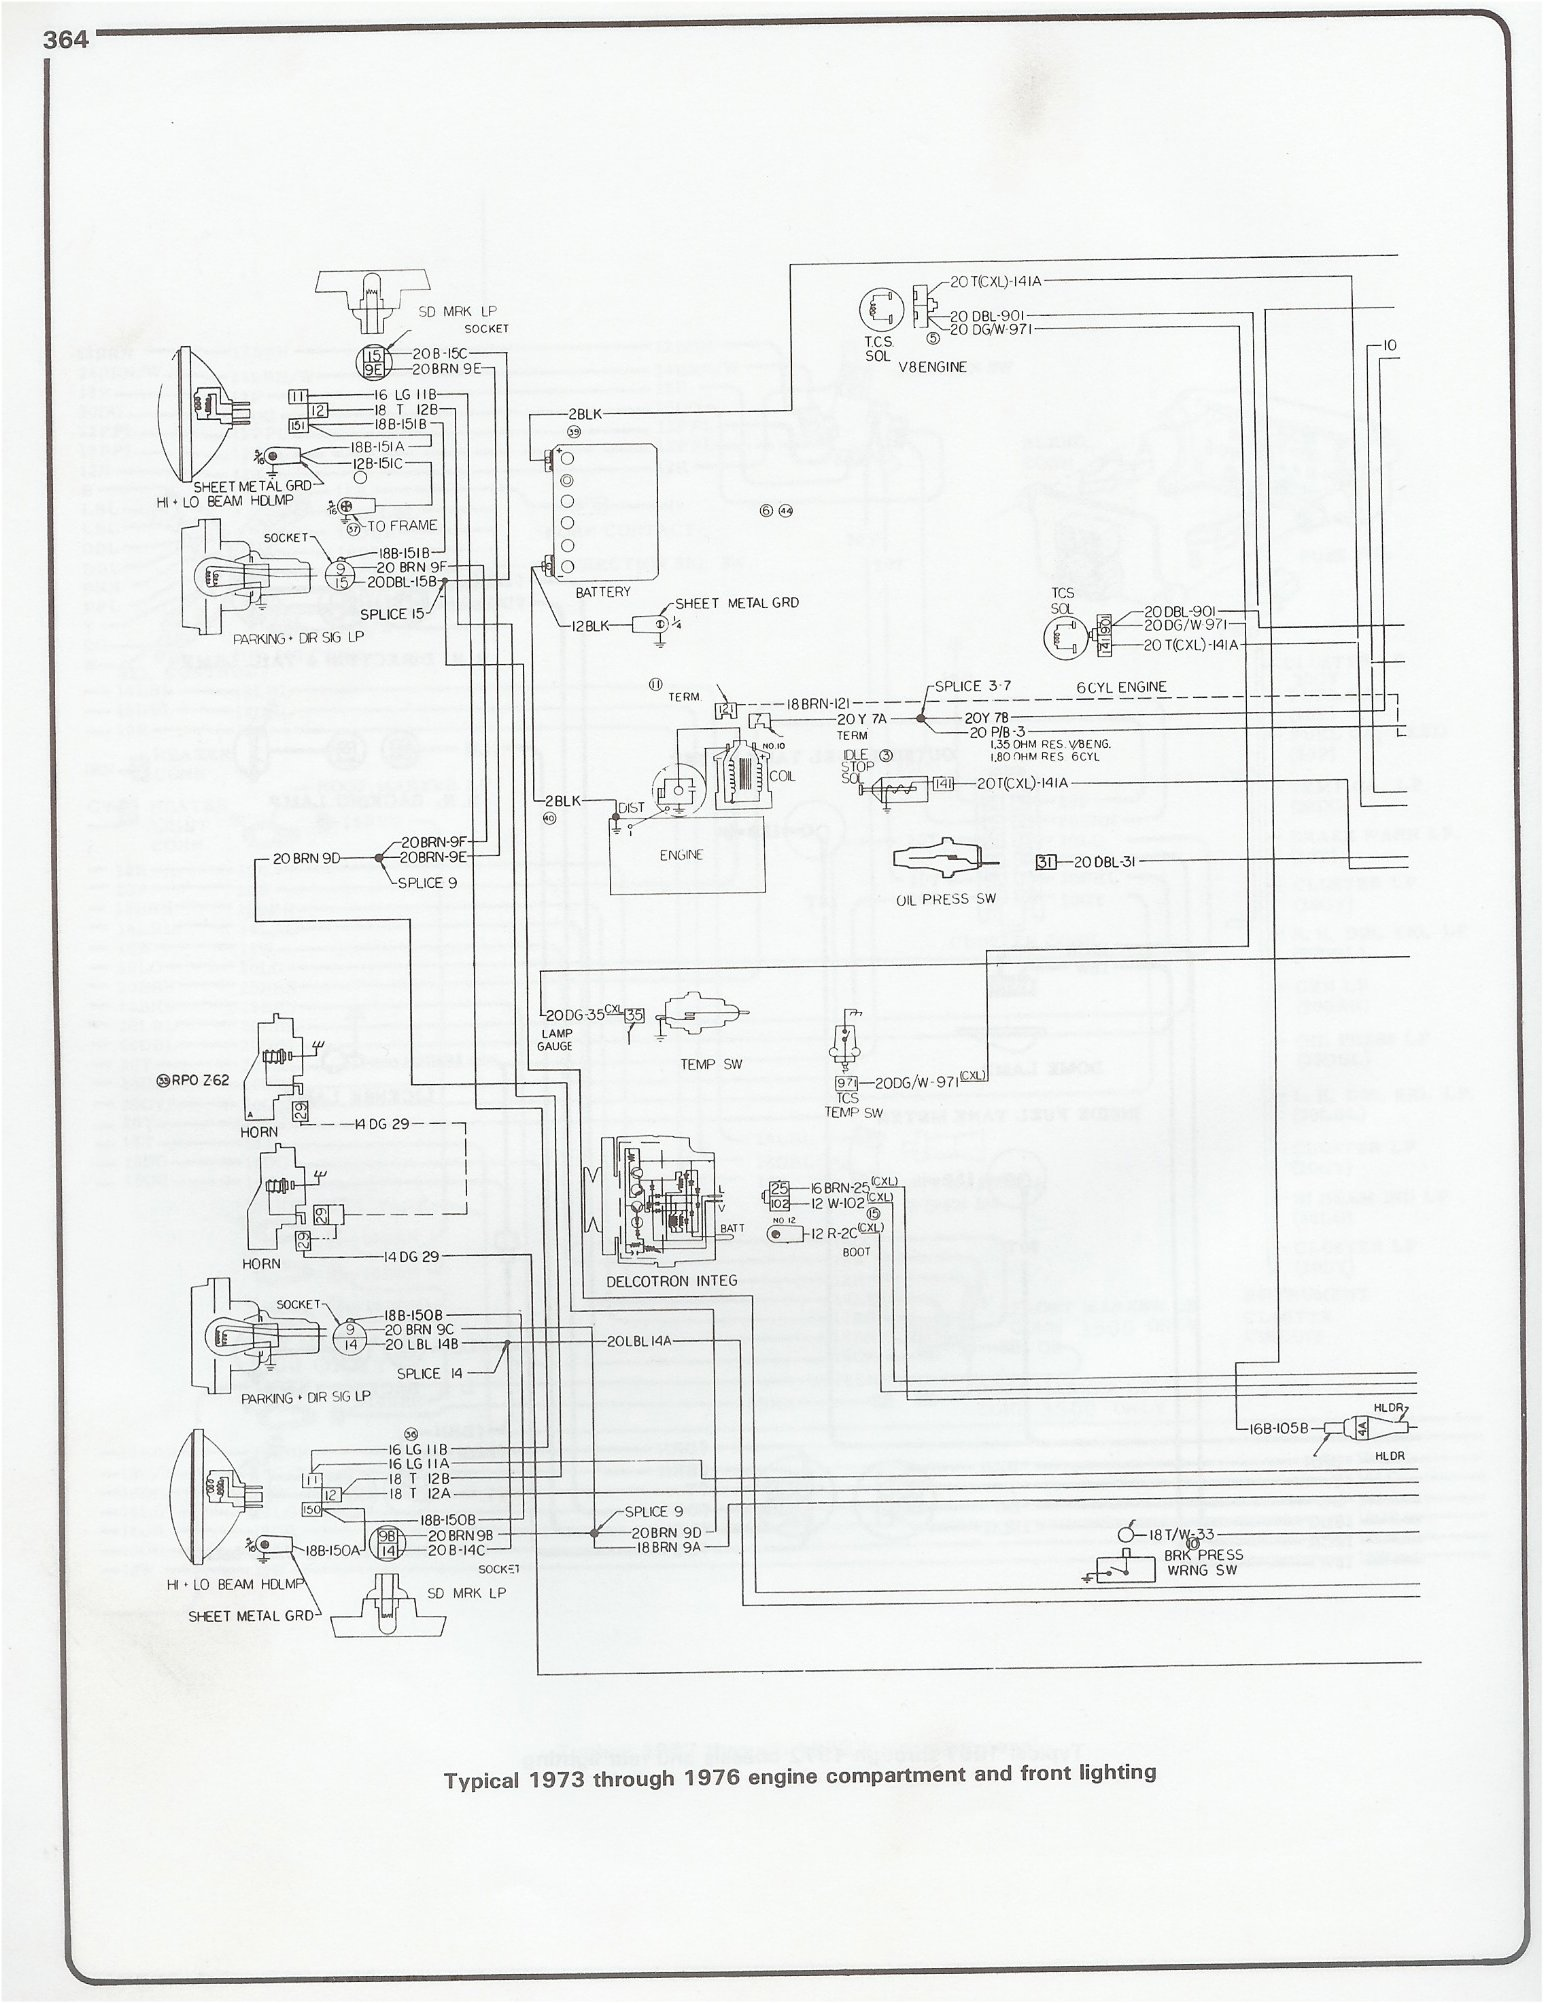 Complete 73 87 Wiring Diagrams Chevy Cavalier Radio Diagram Free Download 76 Engine And Front Lighting